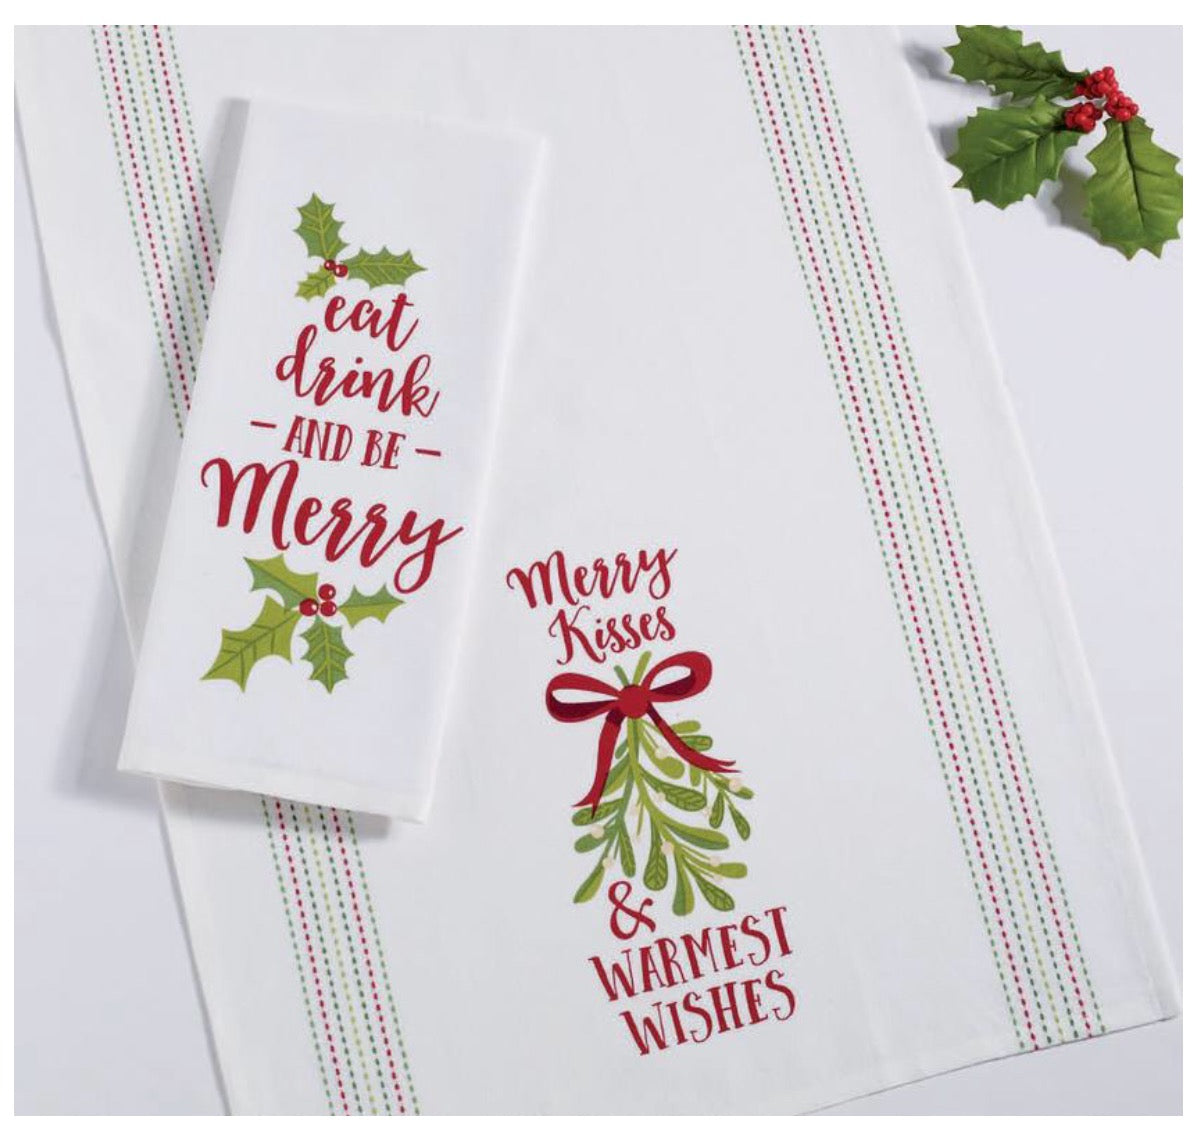 Merry Kisses & Warmest Wishes Christmas Hand Towel